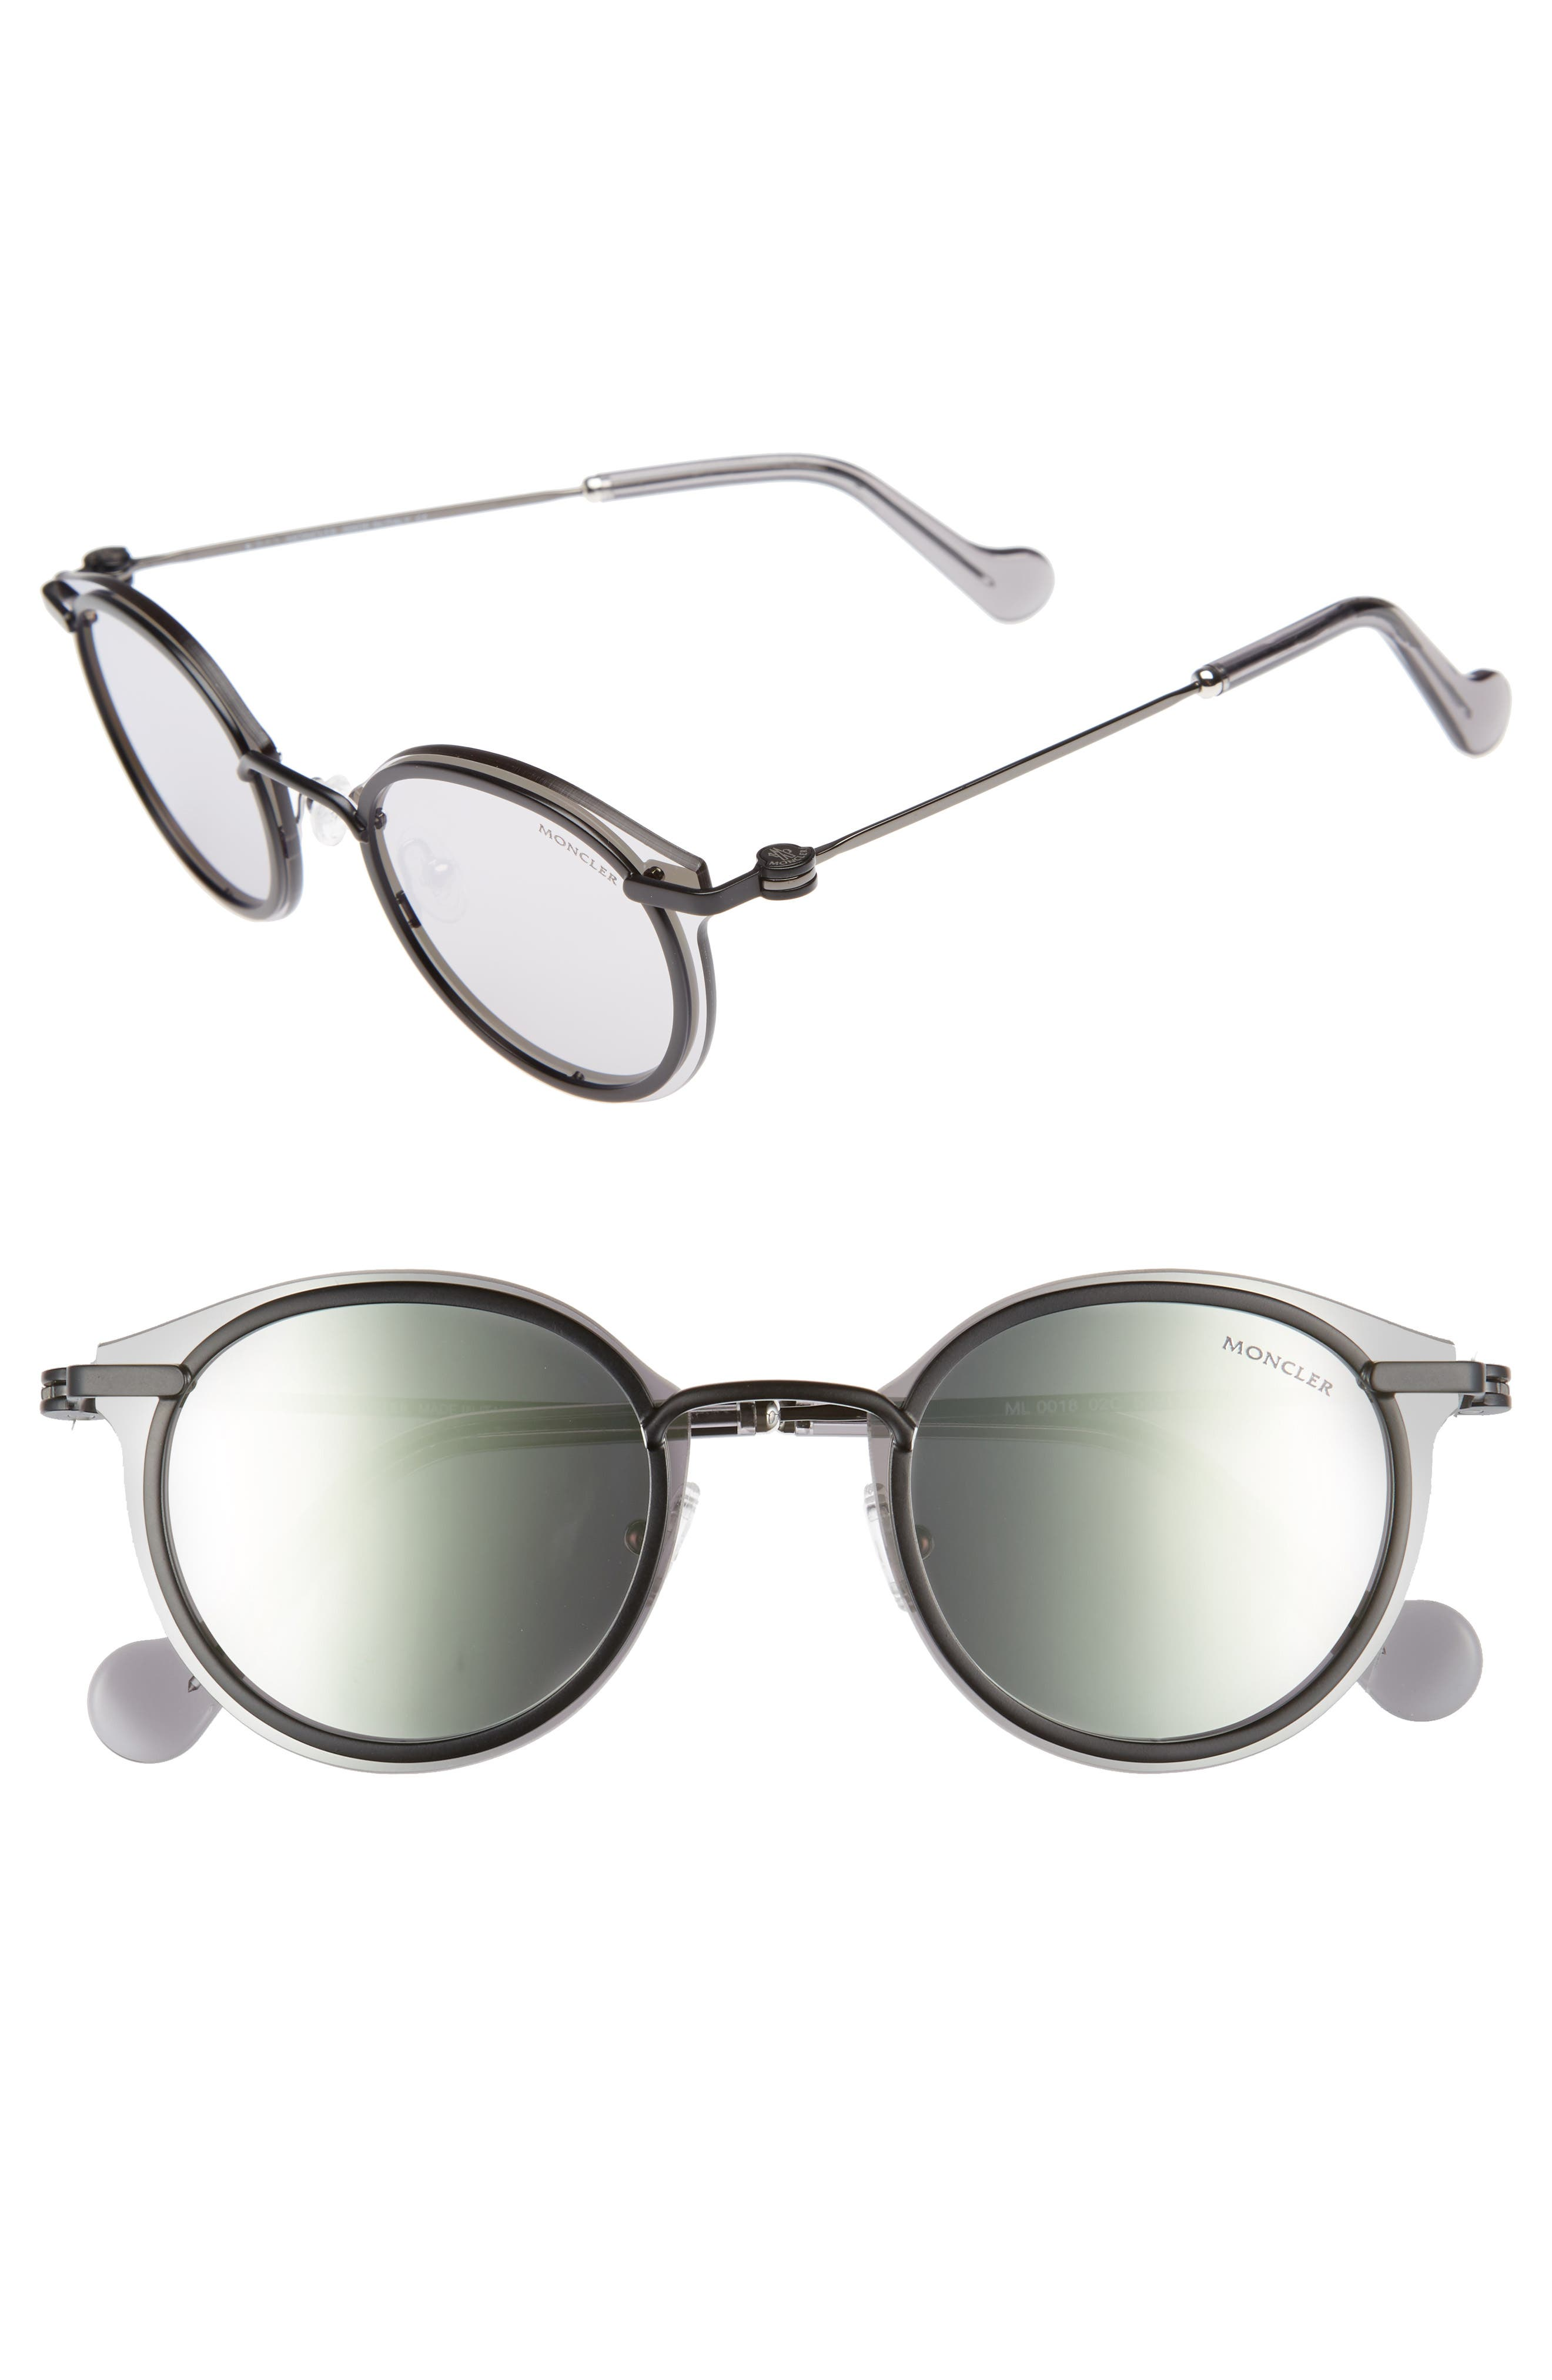 58mm Mirrored Round Sunglasses,                             Main thumbnail 1, color,                             001